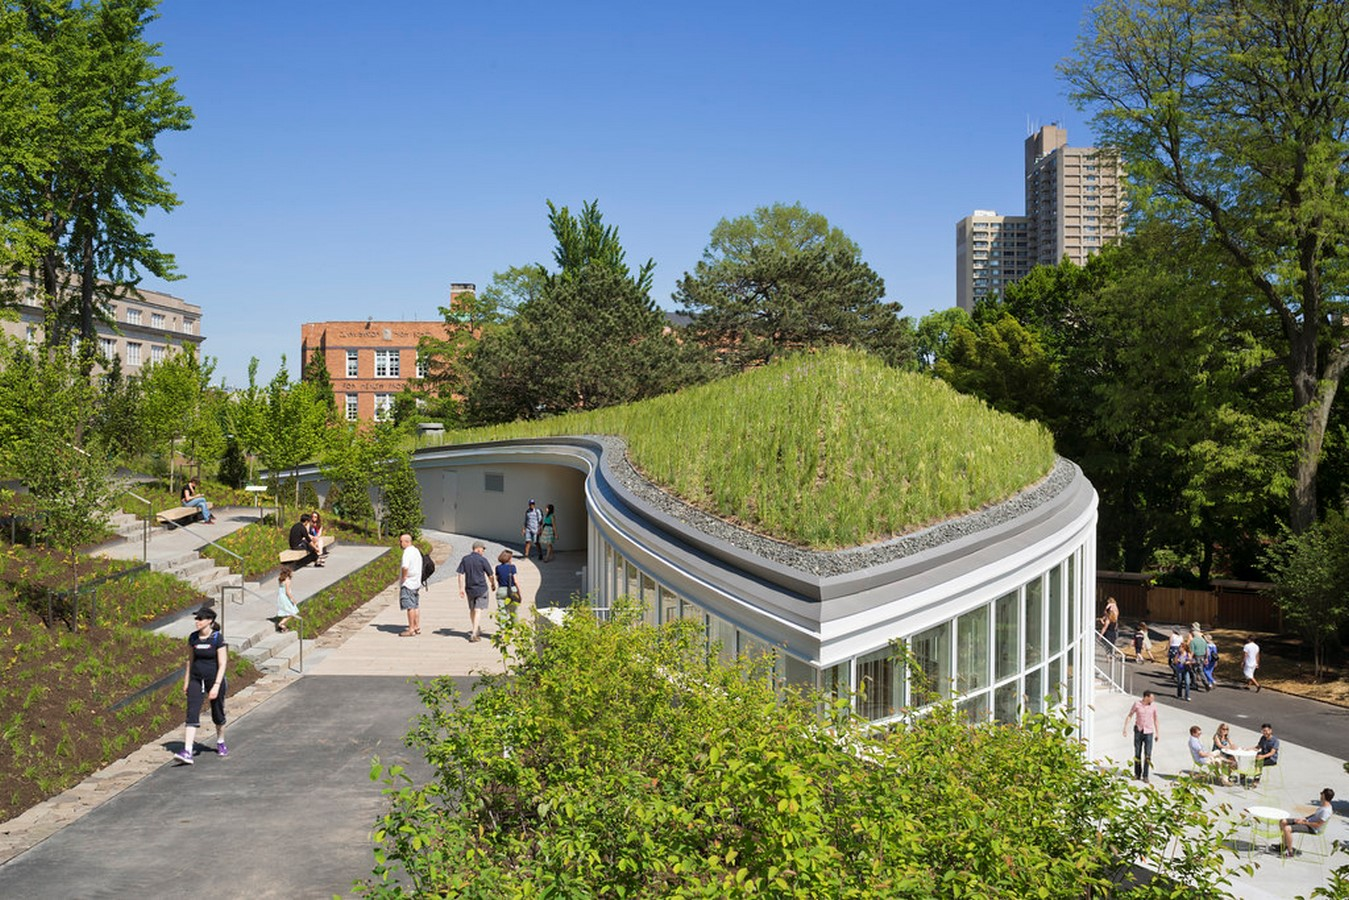 Green Roofs: An urban agricultural opportunity - Sheet7